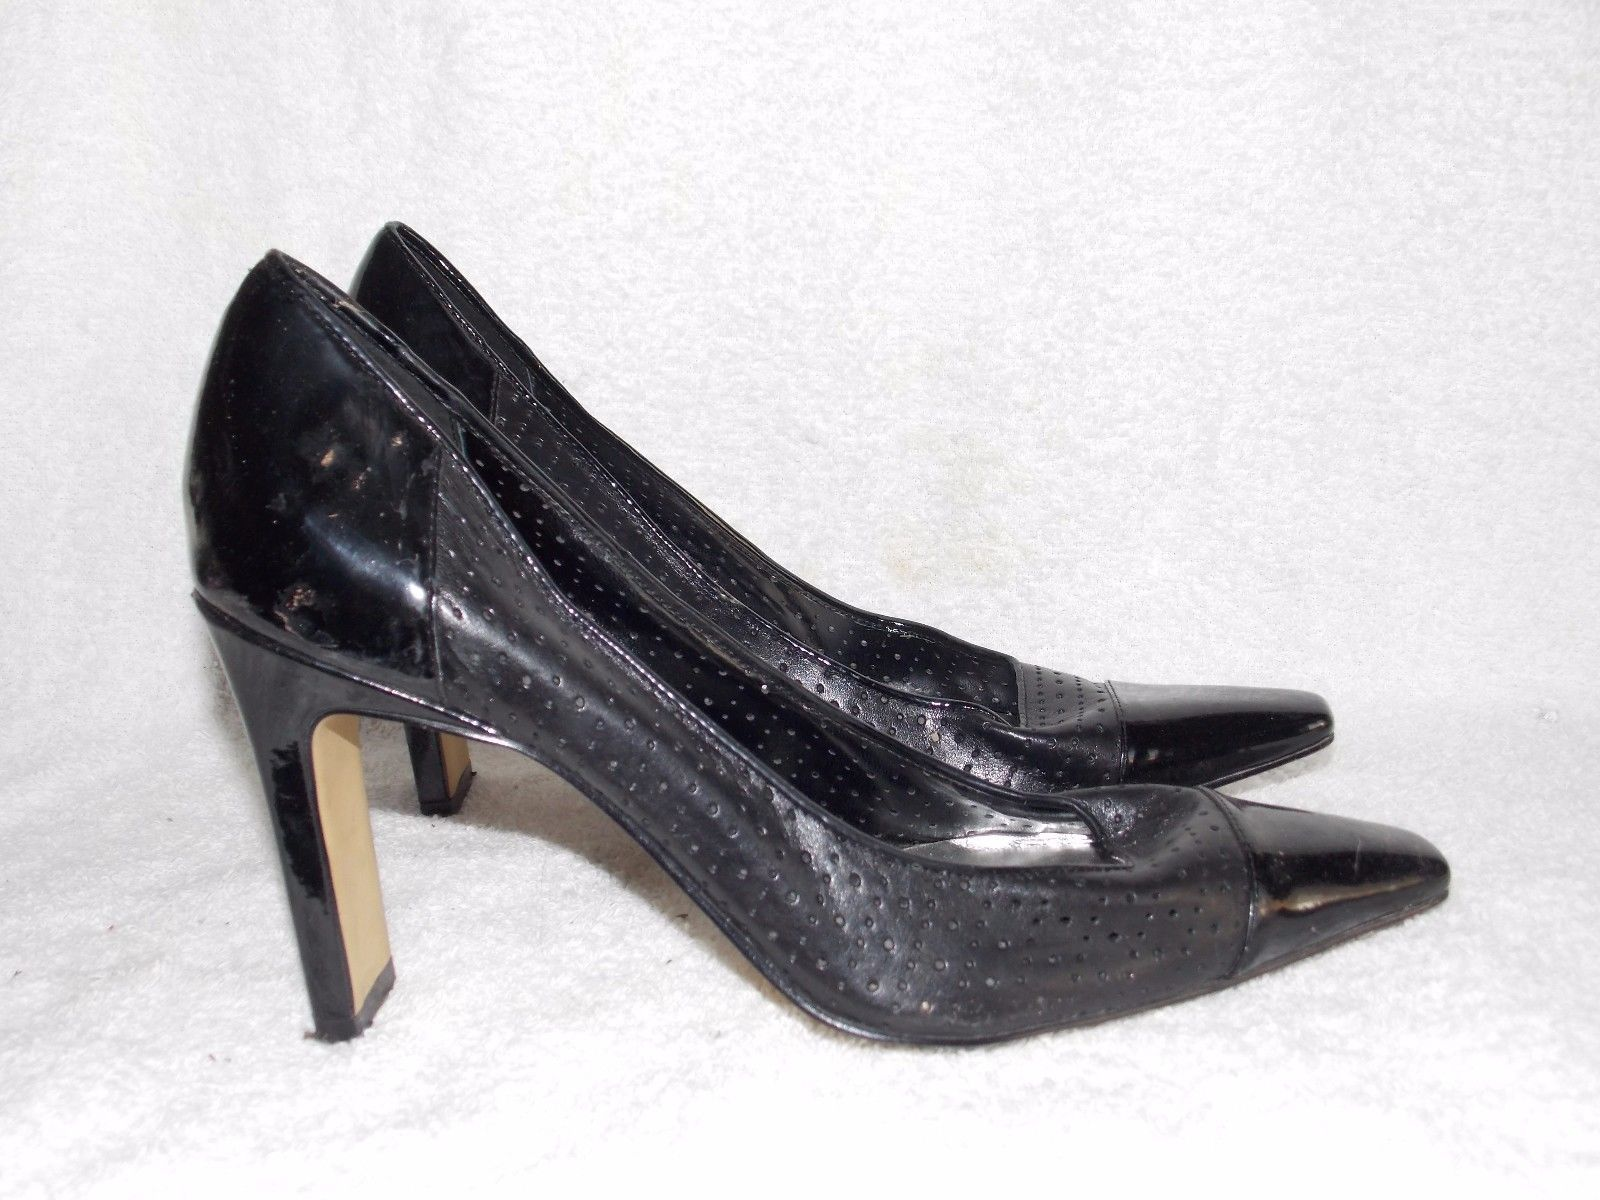 8947718f0 Franco Sarto PUNCHED Black Leather Heels 8M and 23 similar items. S l1600